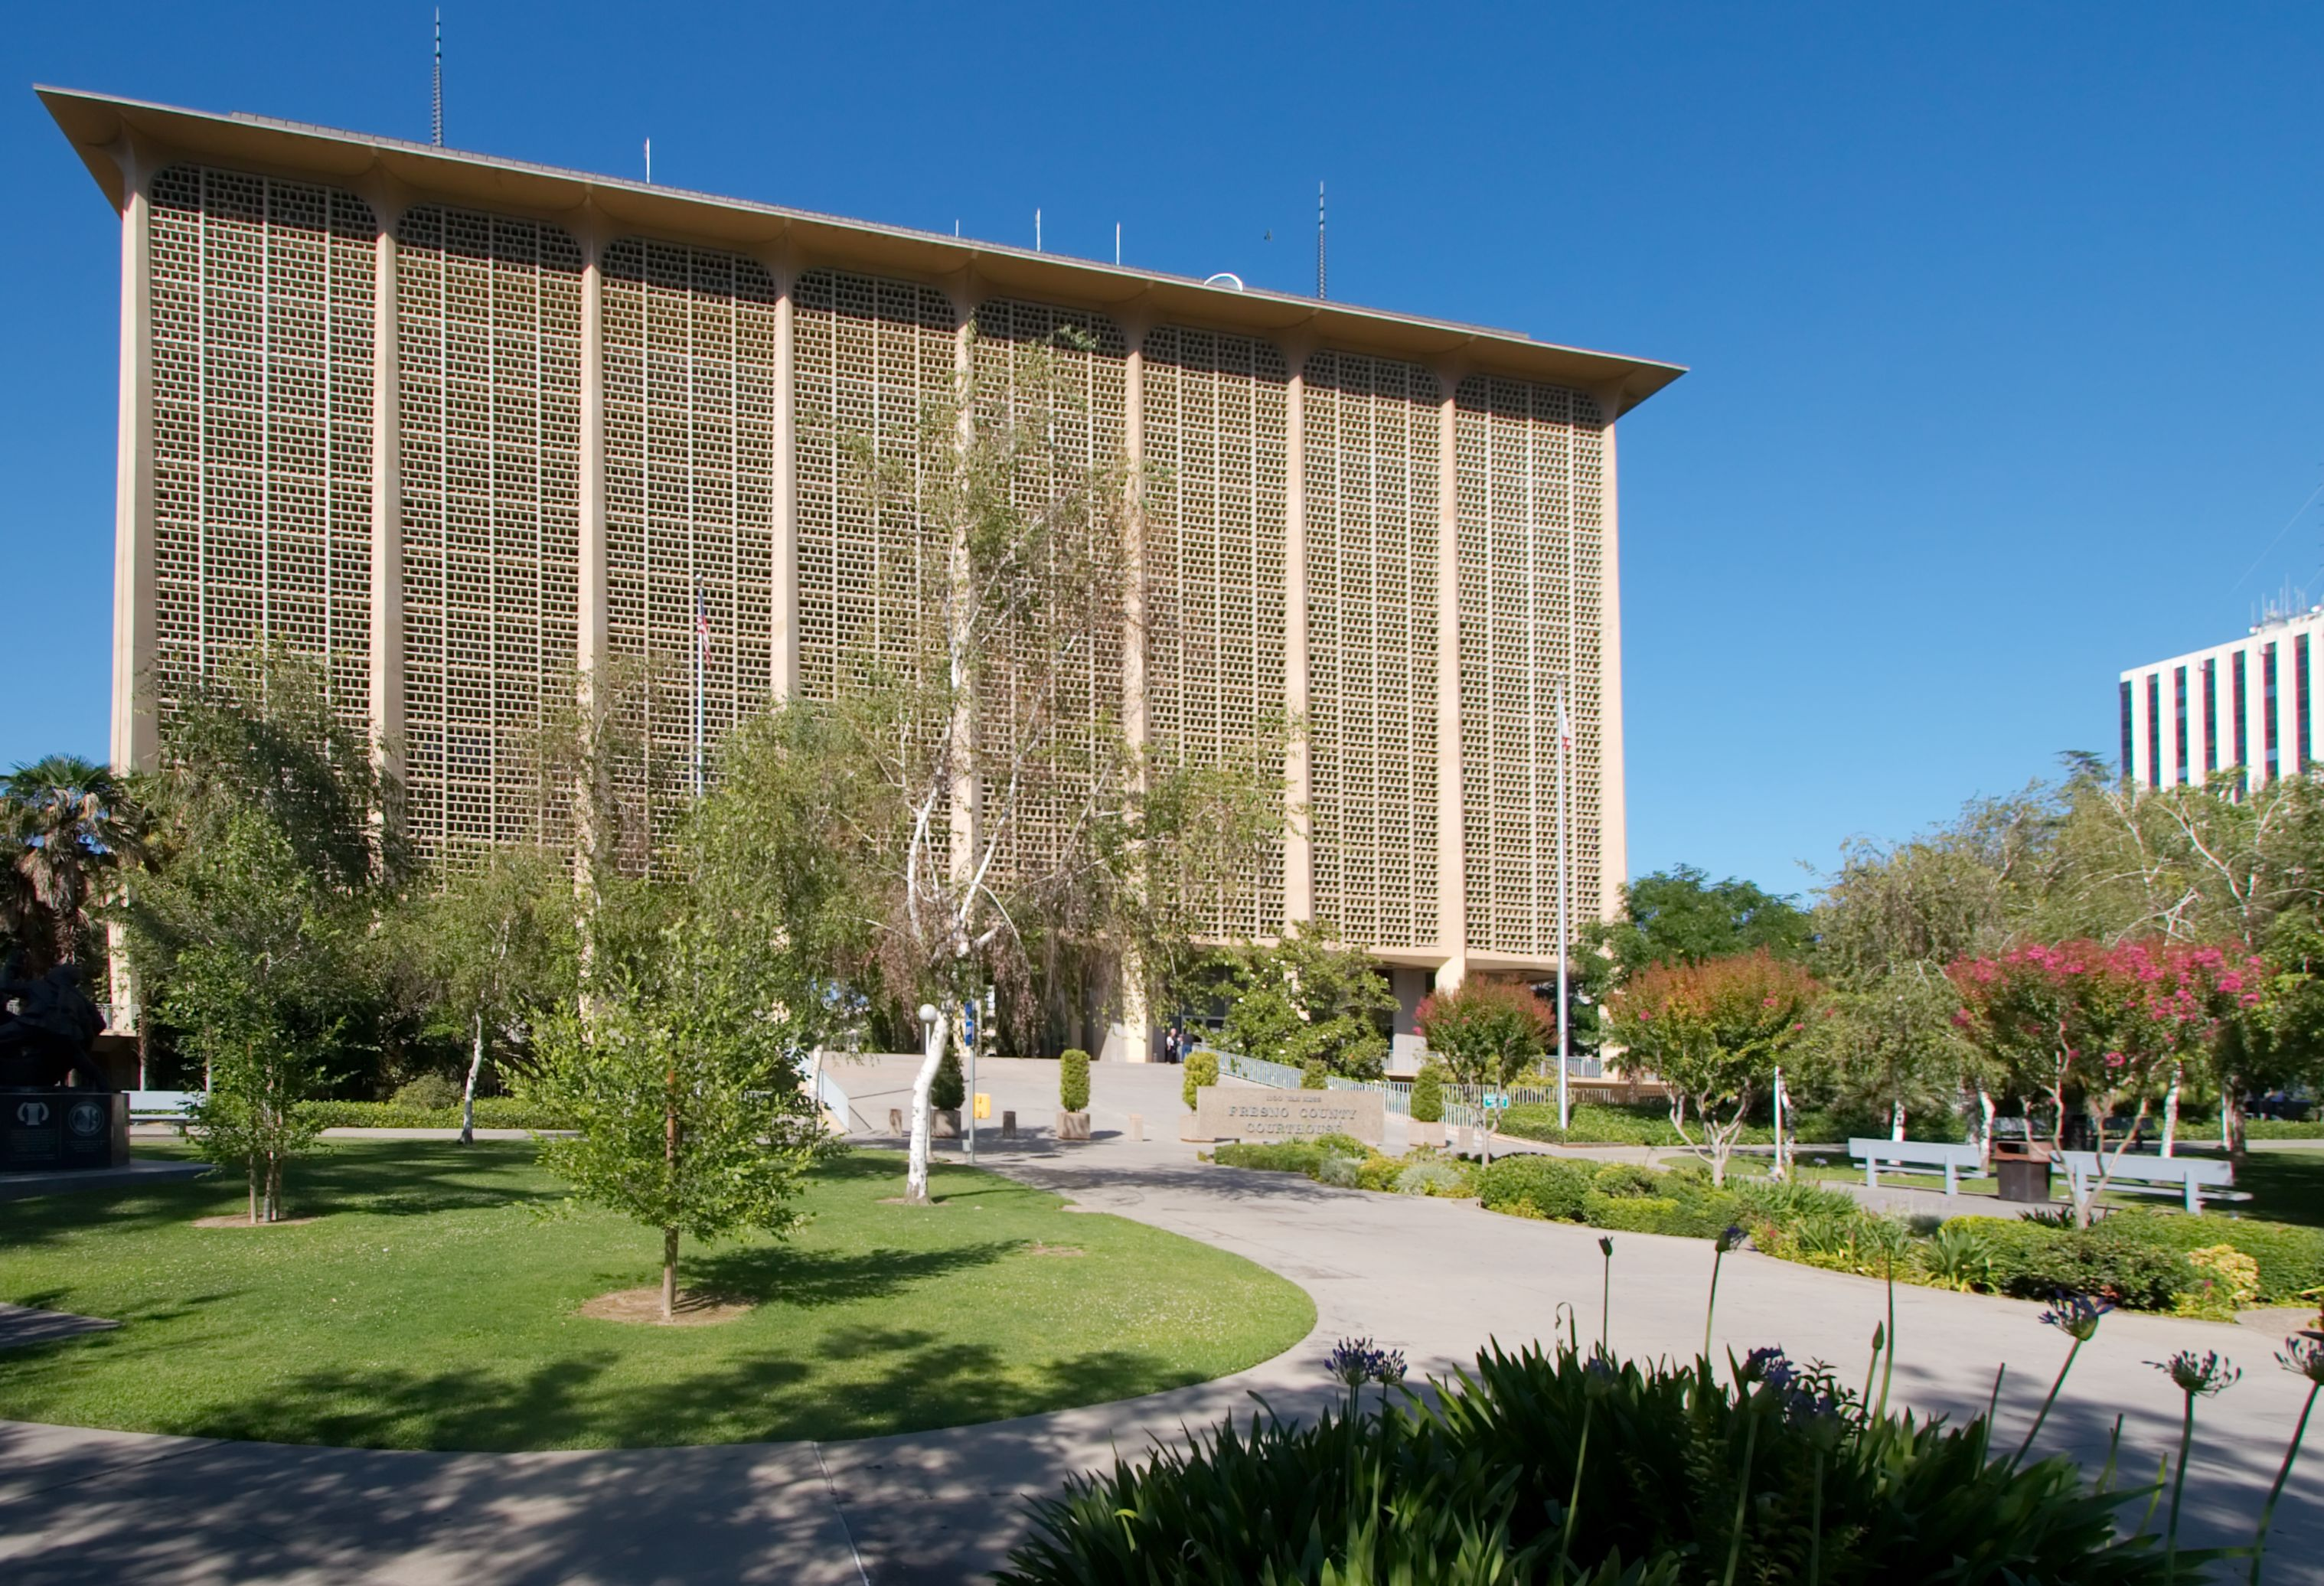 File:Fresno county courthouse.